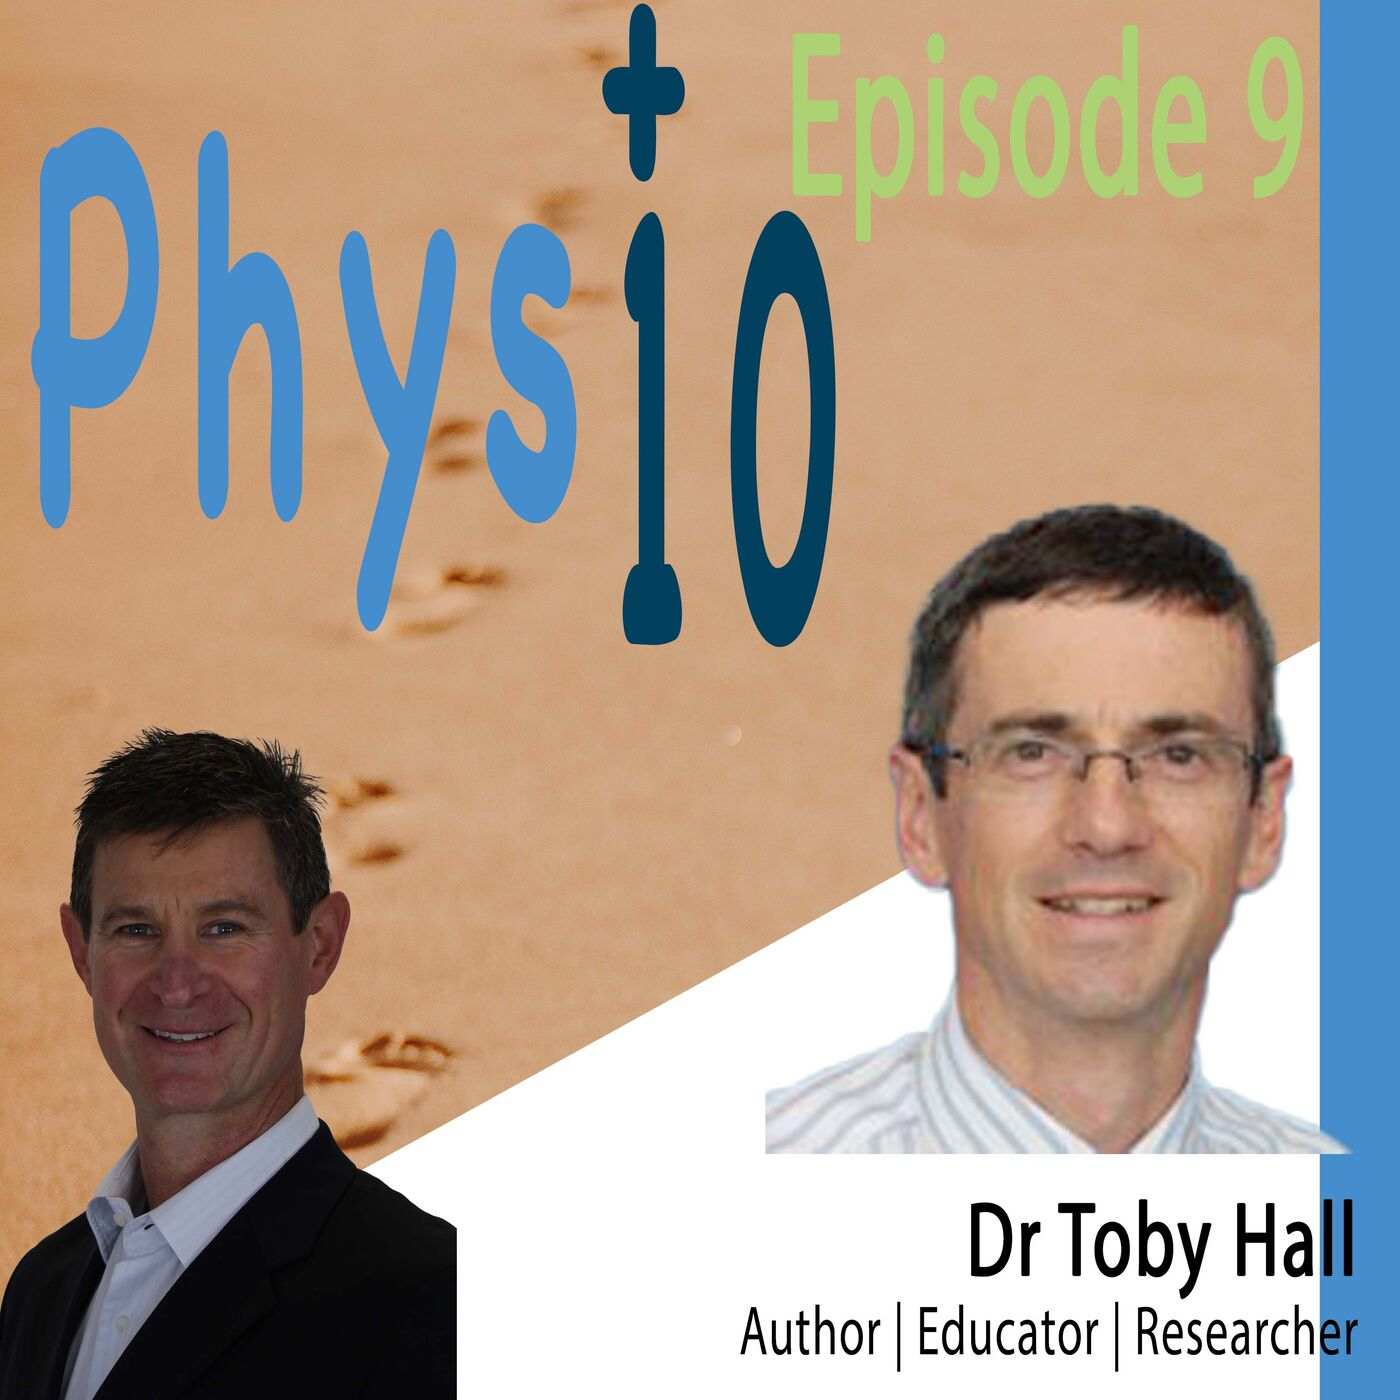 Dr Toby Hall : Educator | Researcher | Author